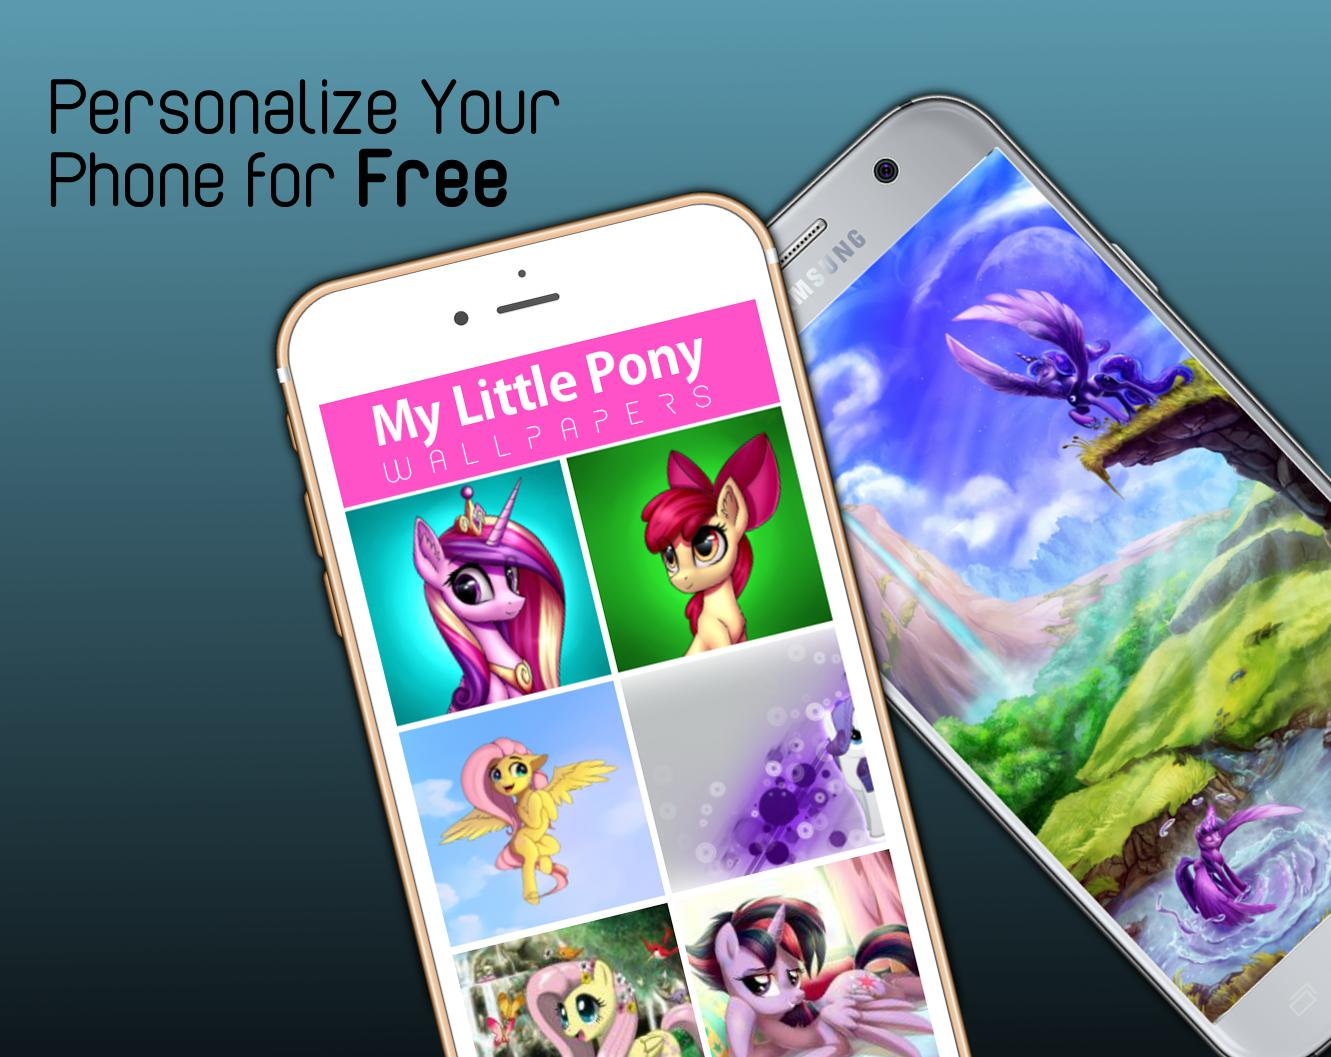 My Little Pony Wallpapers Hd For Android Apk Download